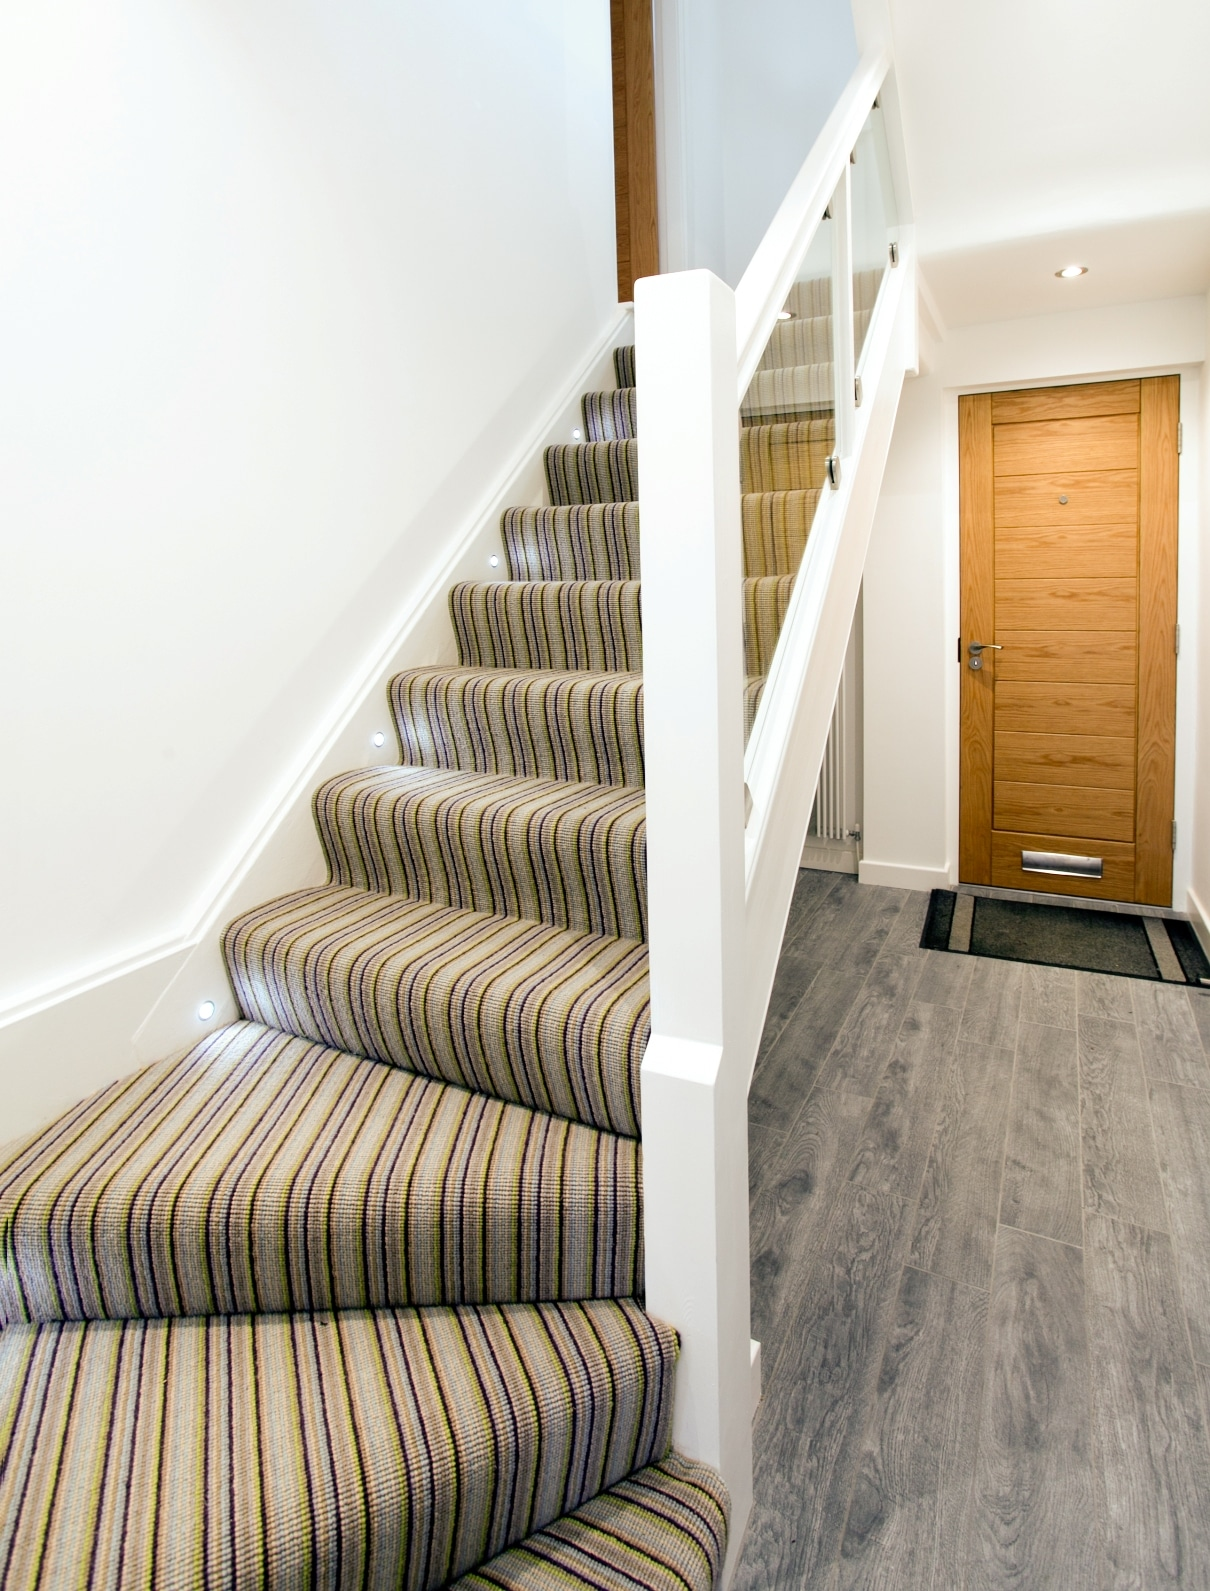 Finished Refurbished Staircase Transforming Homes For